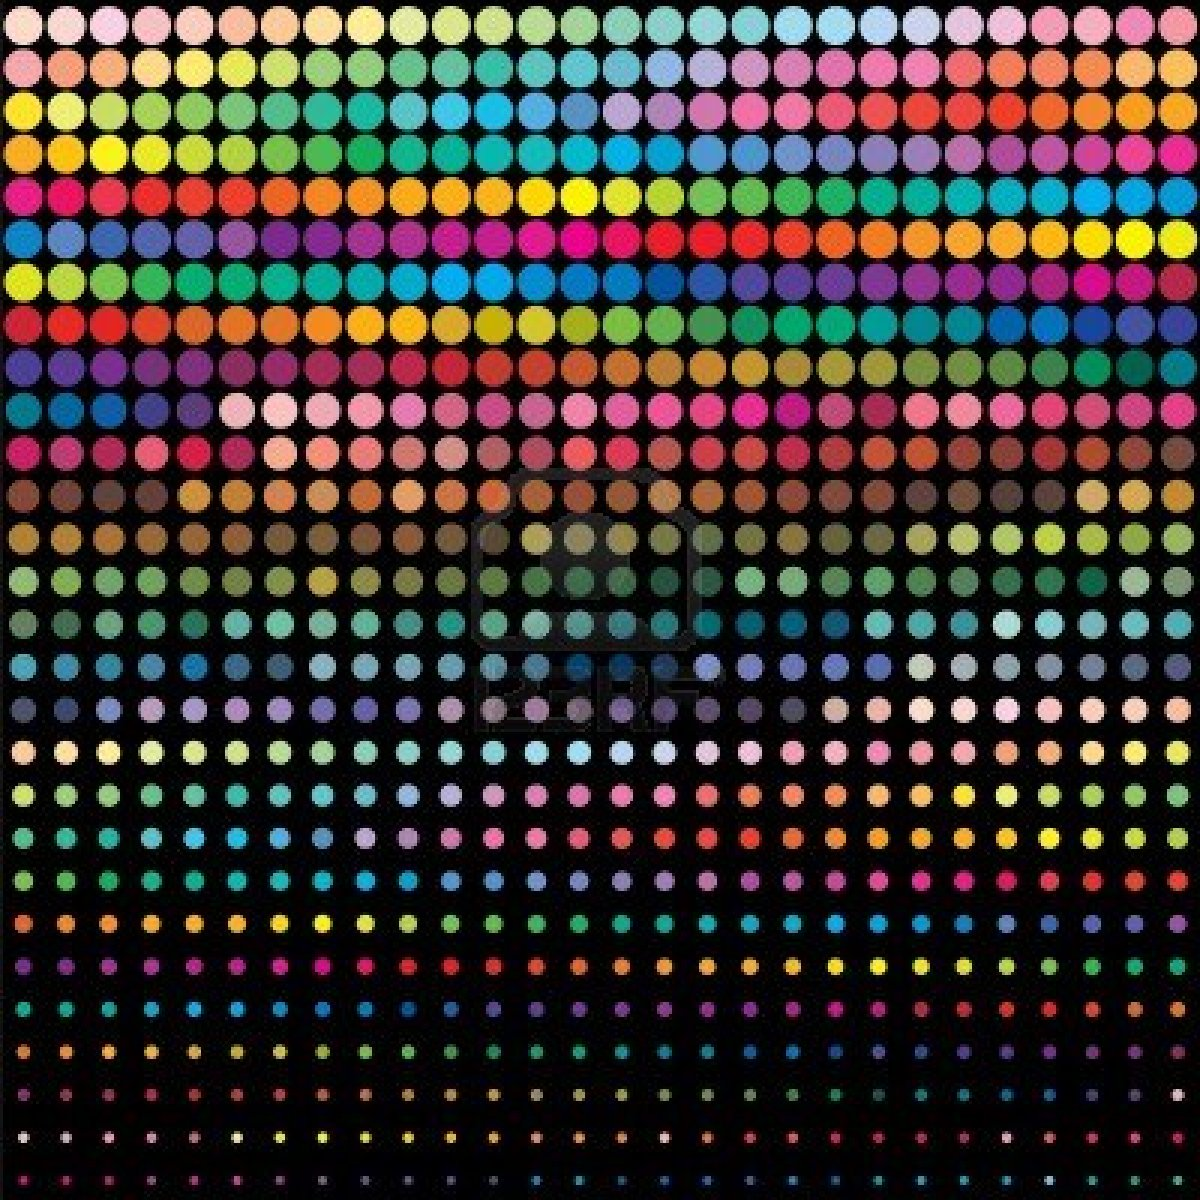 12726369-circle-color-palette-background-or-texture.jpg